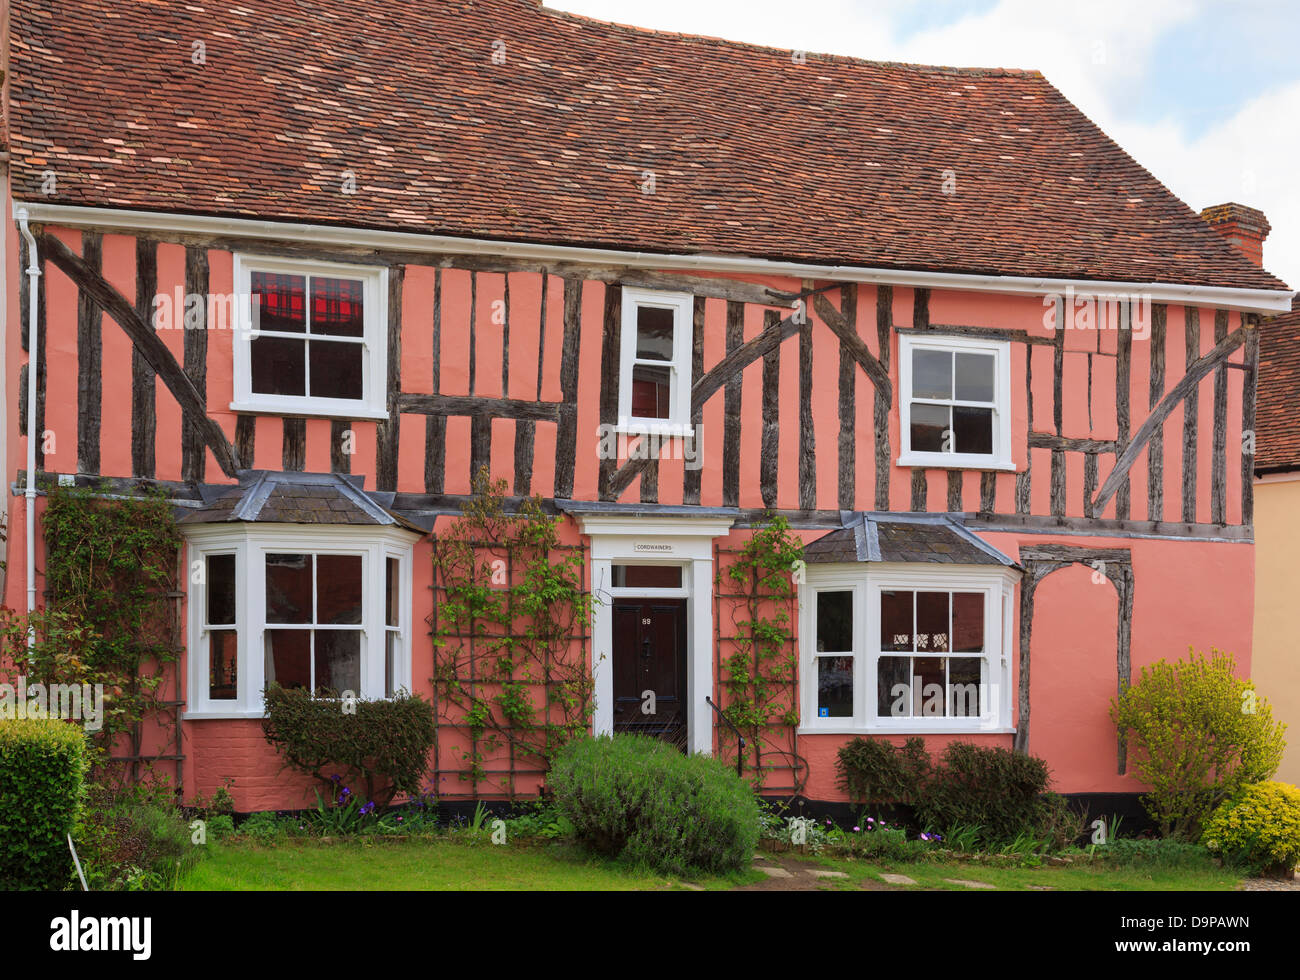 Old Cordwainers cottage pink timbered Tudor house front in medieval village of Lavenham, Suffolk, England, UK, Britain - Stock Image